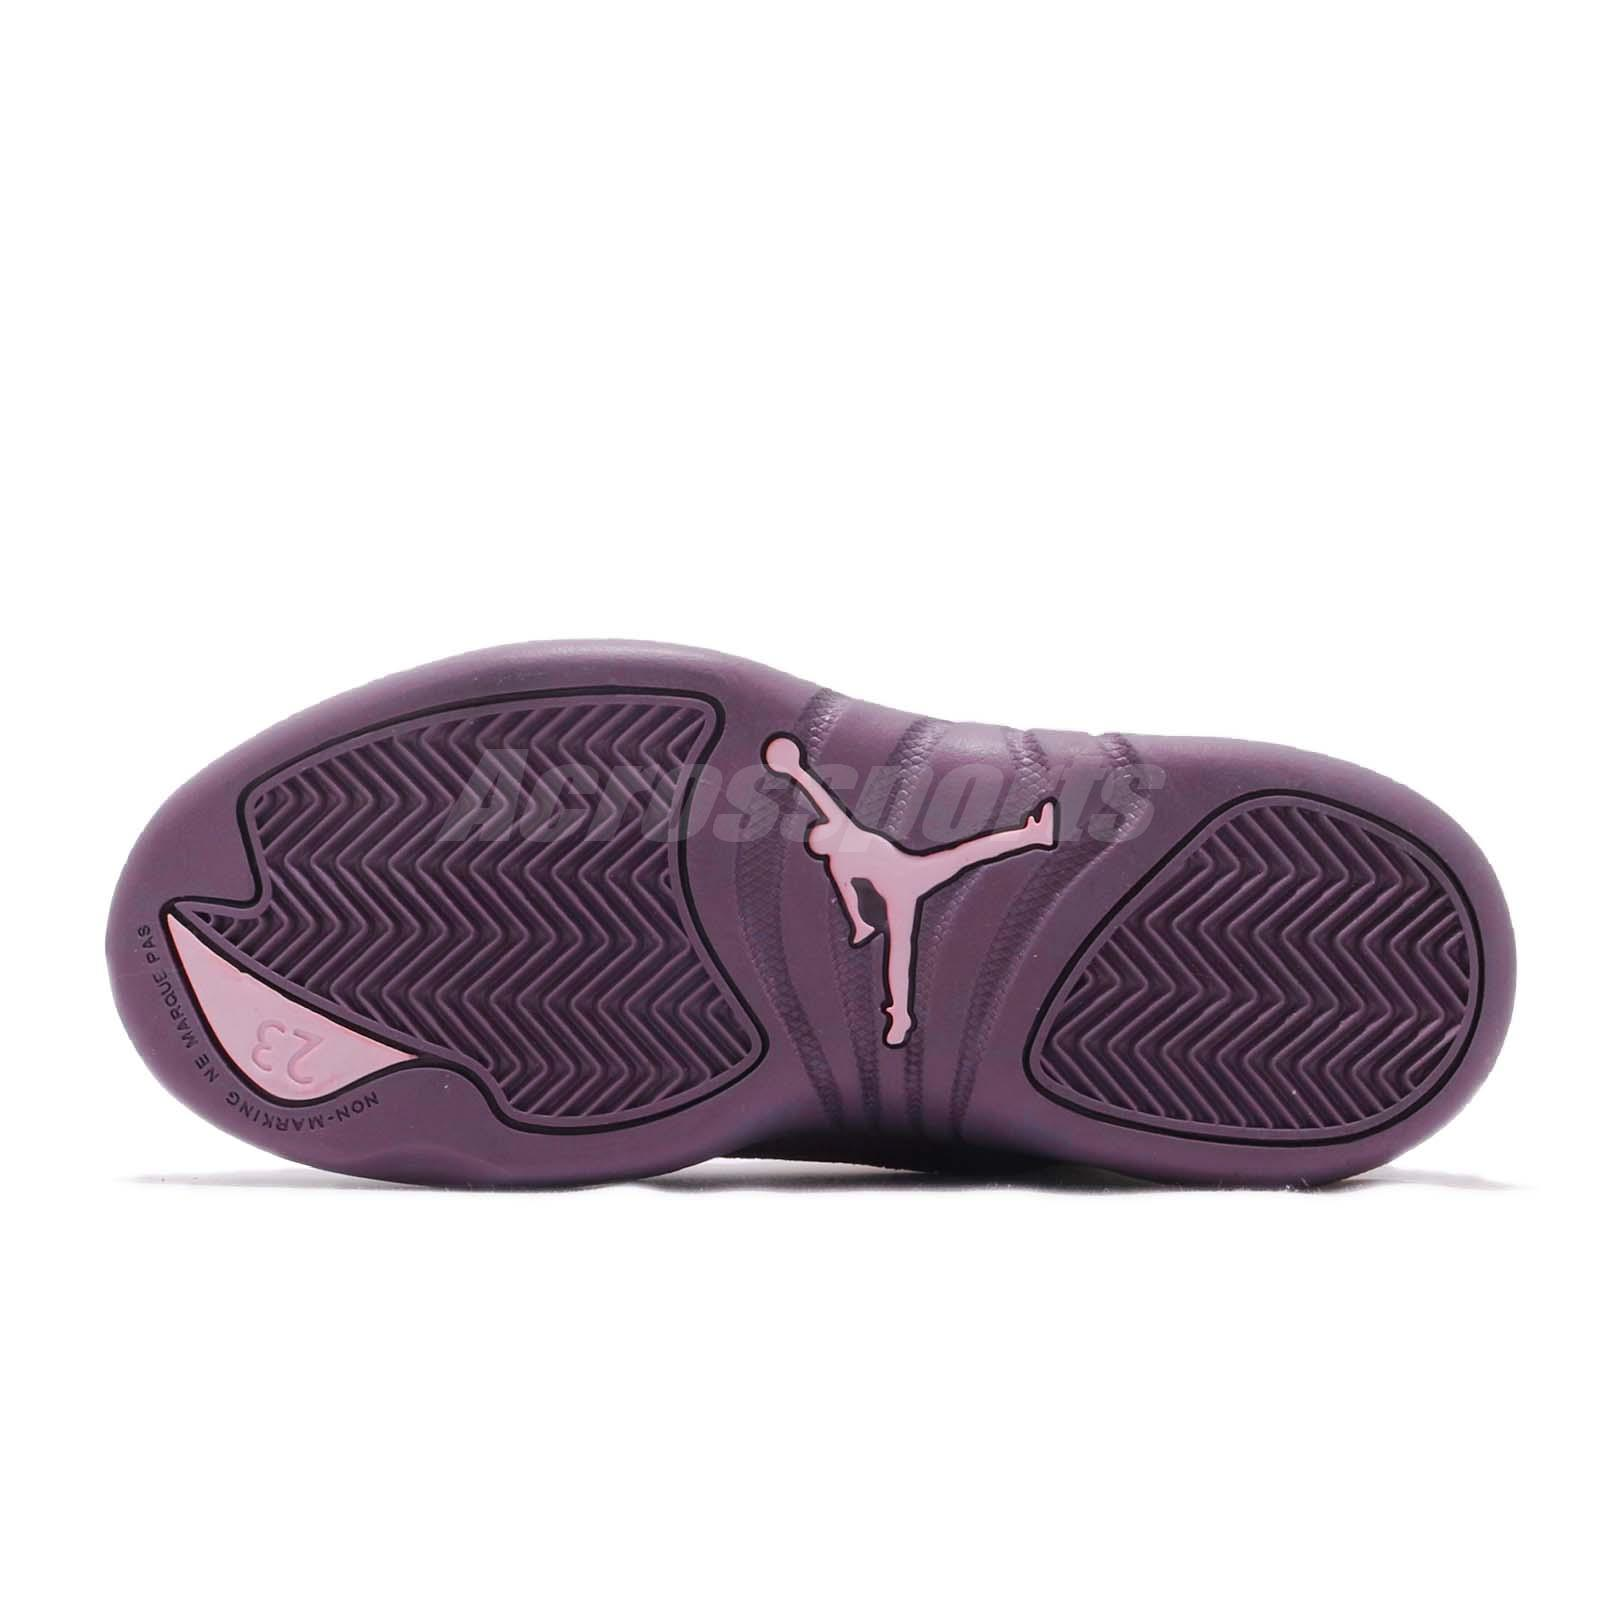 8f486db10ac Nike Jordan 12 Retro PS XII AJ12 Desert Sand Purple Kid Preschool ...